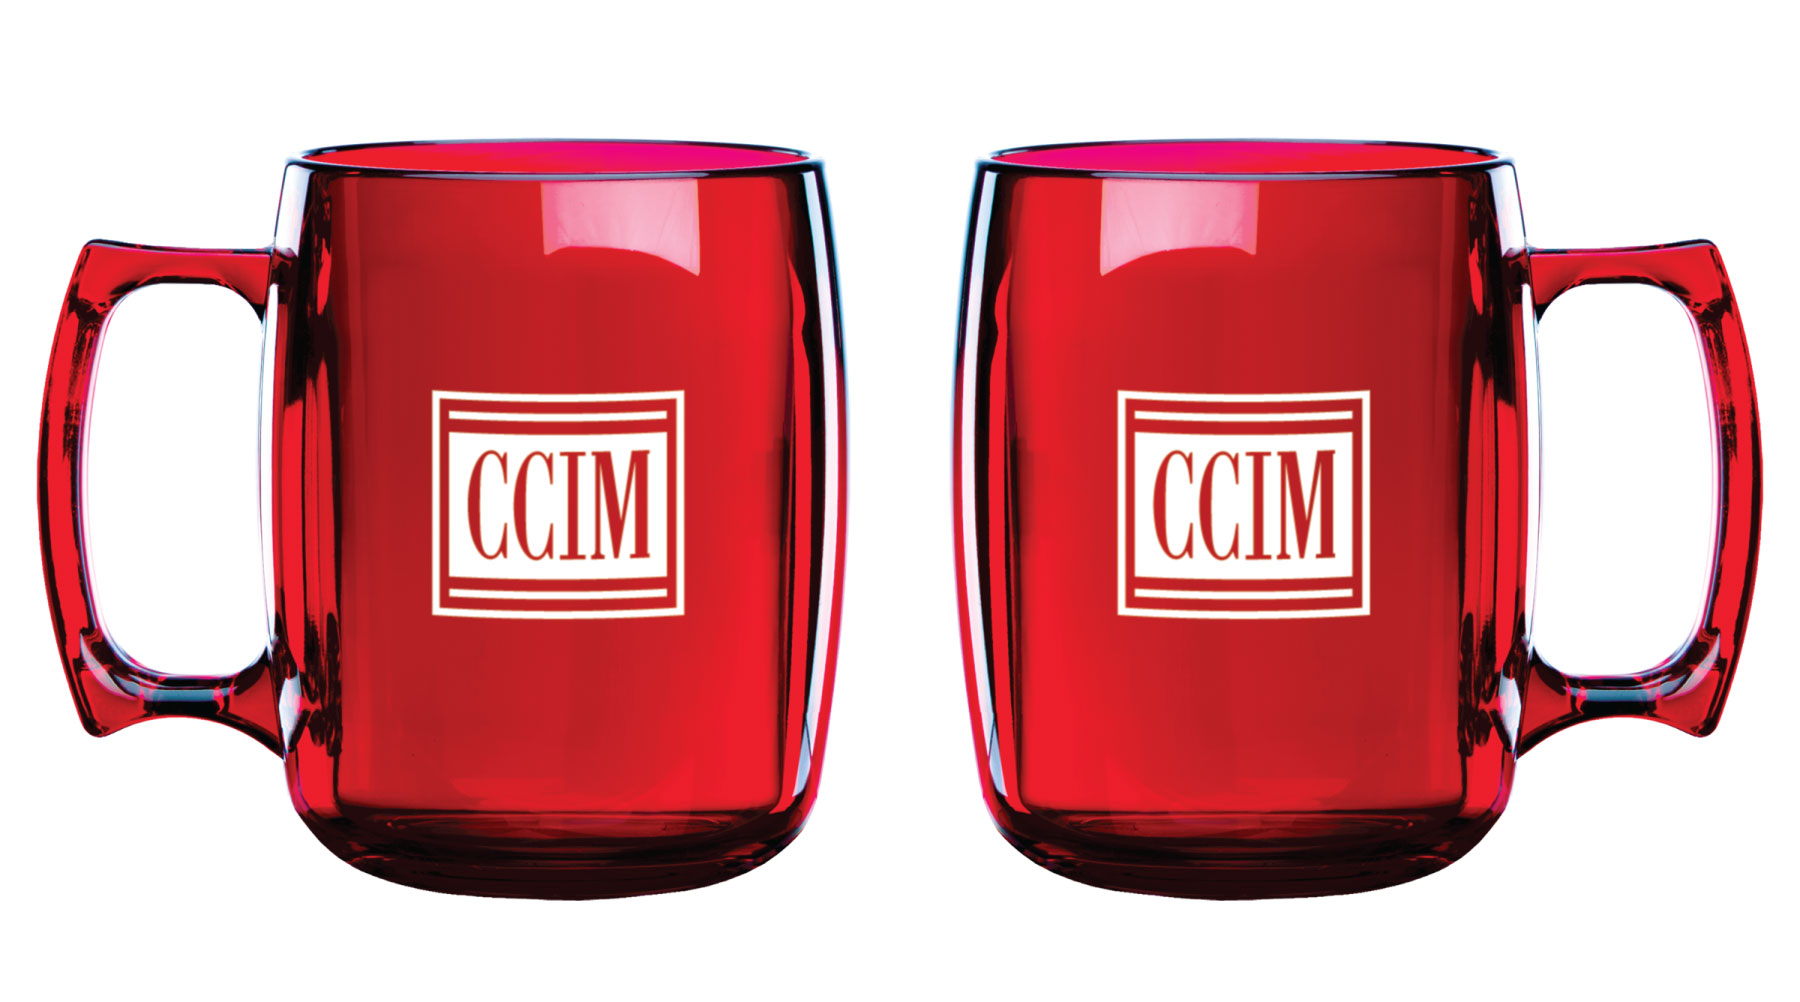 CCIM 14 Oz. Runner Mug Mugs,Cups,Drinks,Runners